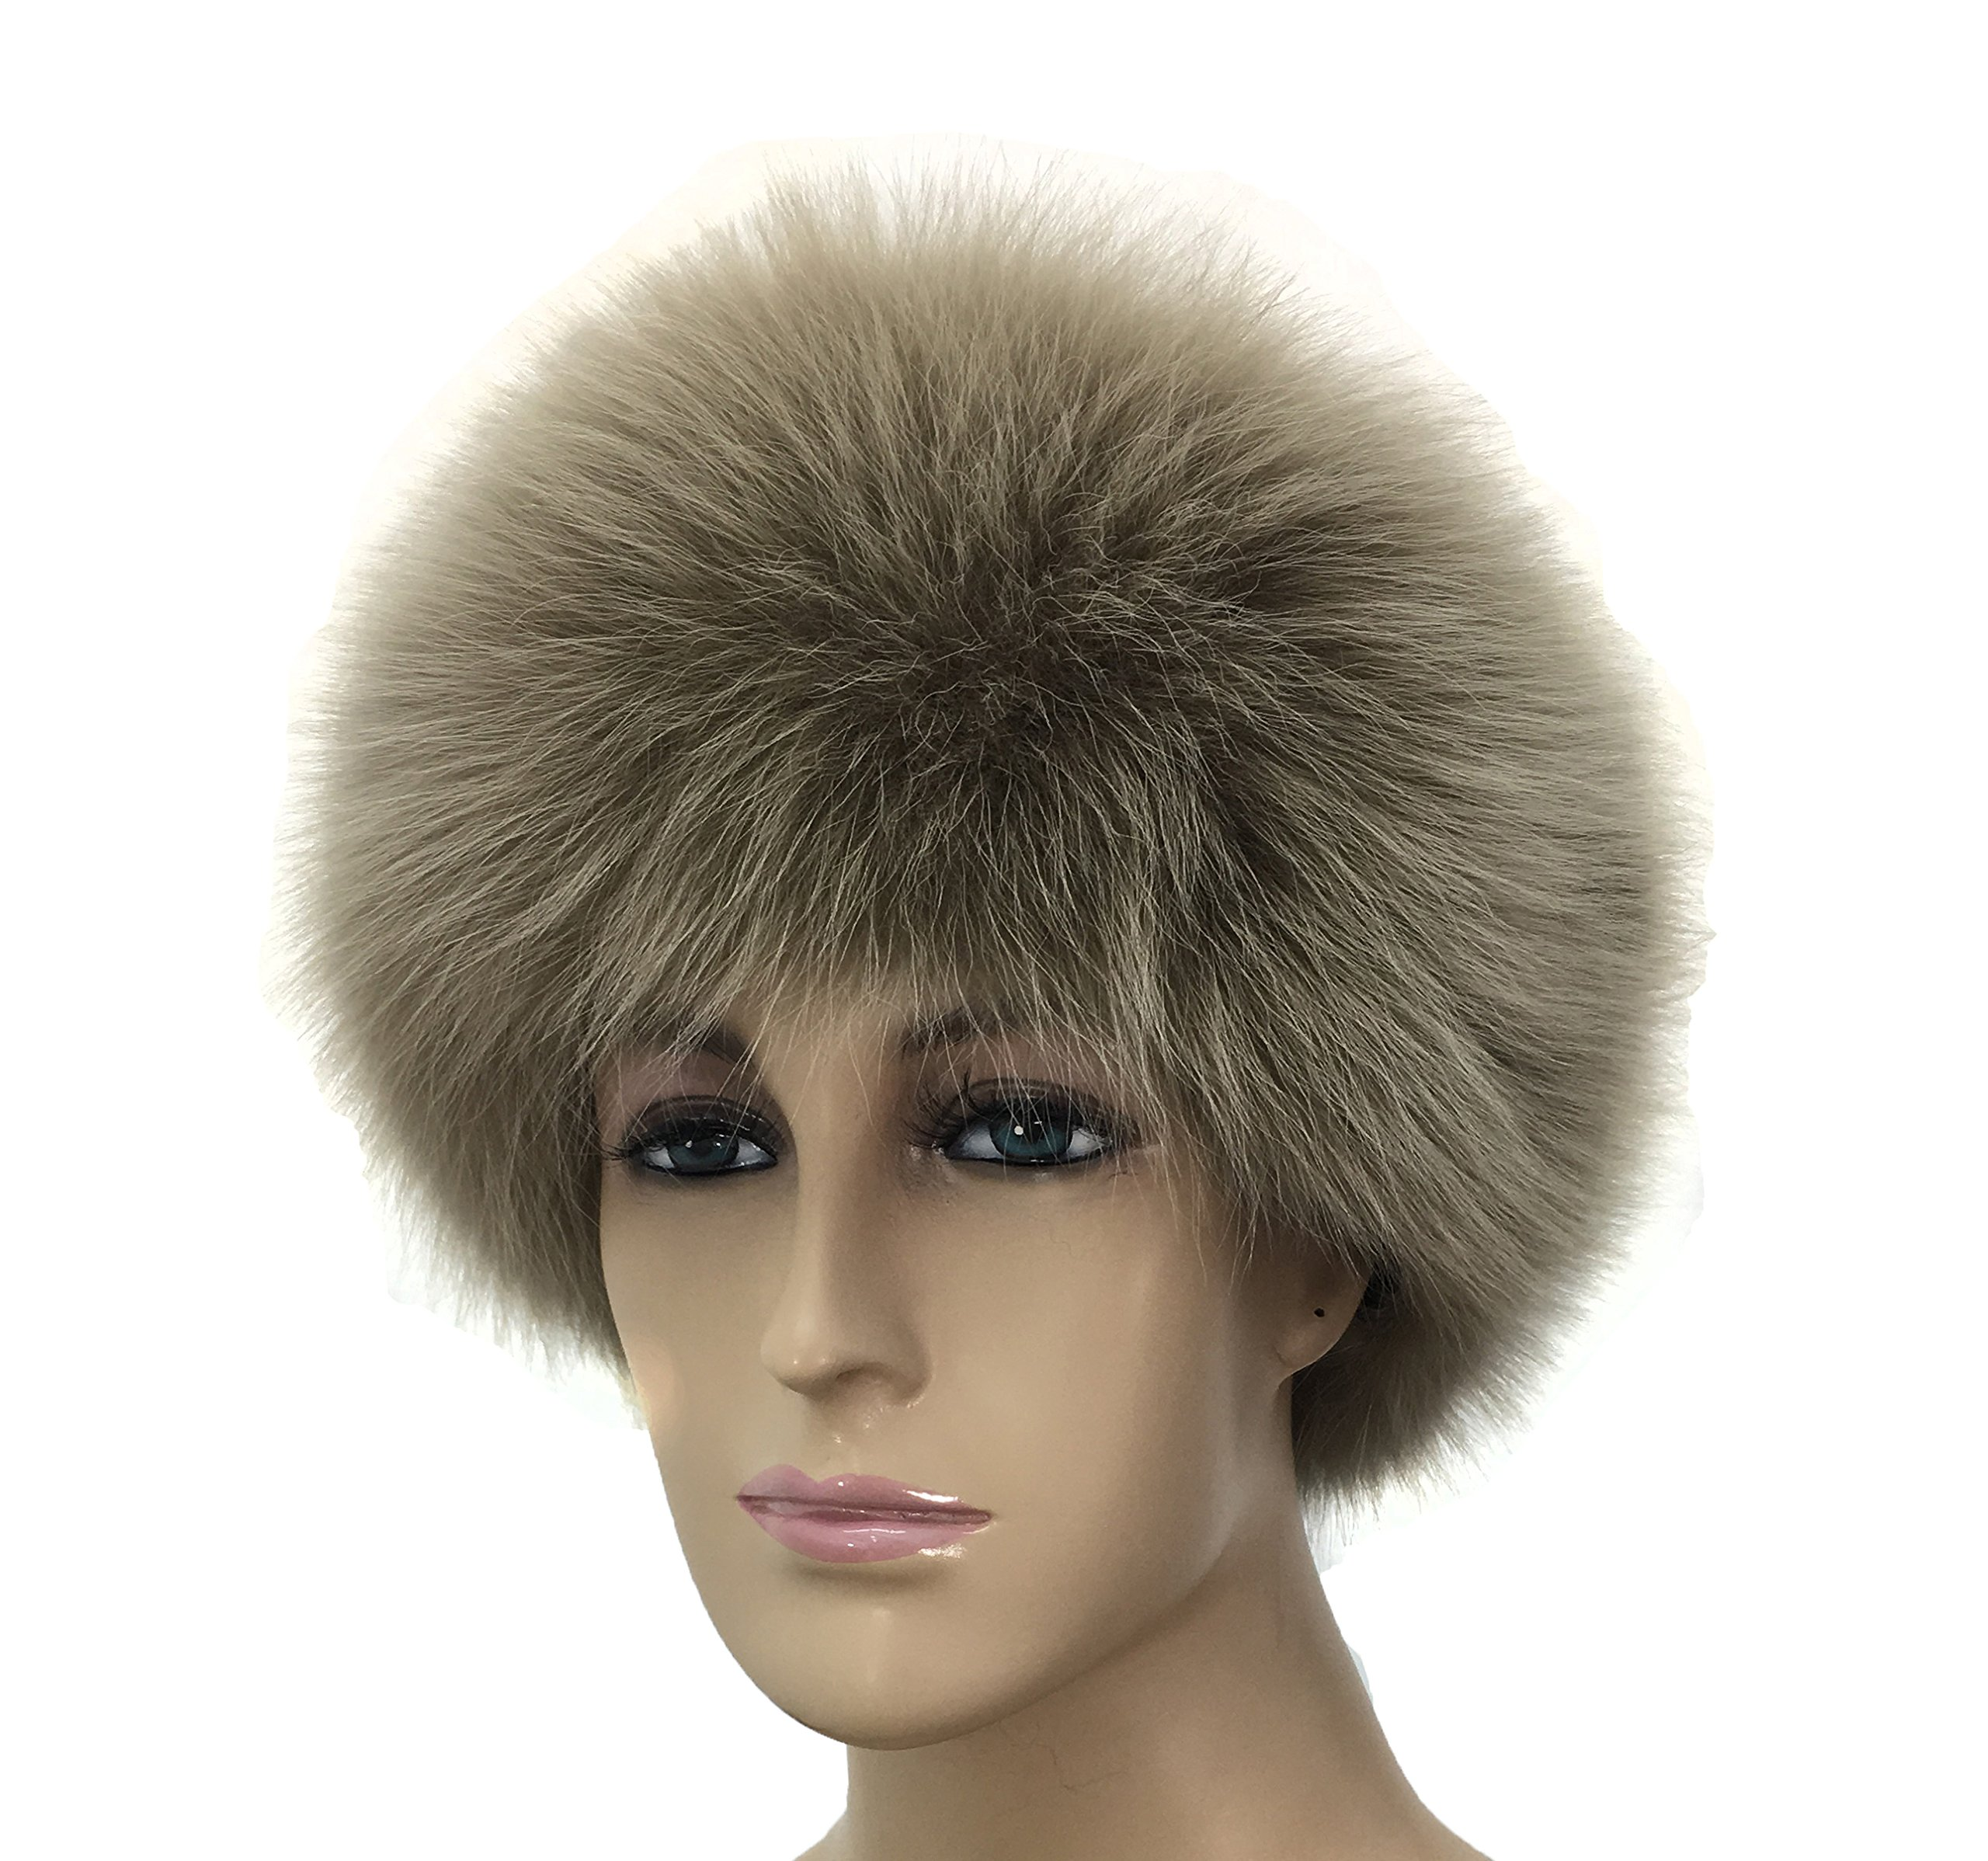 HIMA 100% Real Fox Fur Headband (Beige) by Hima (Image #1)